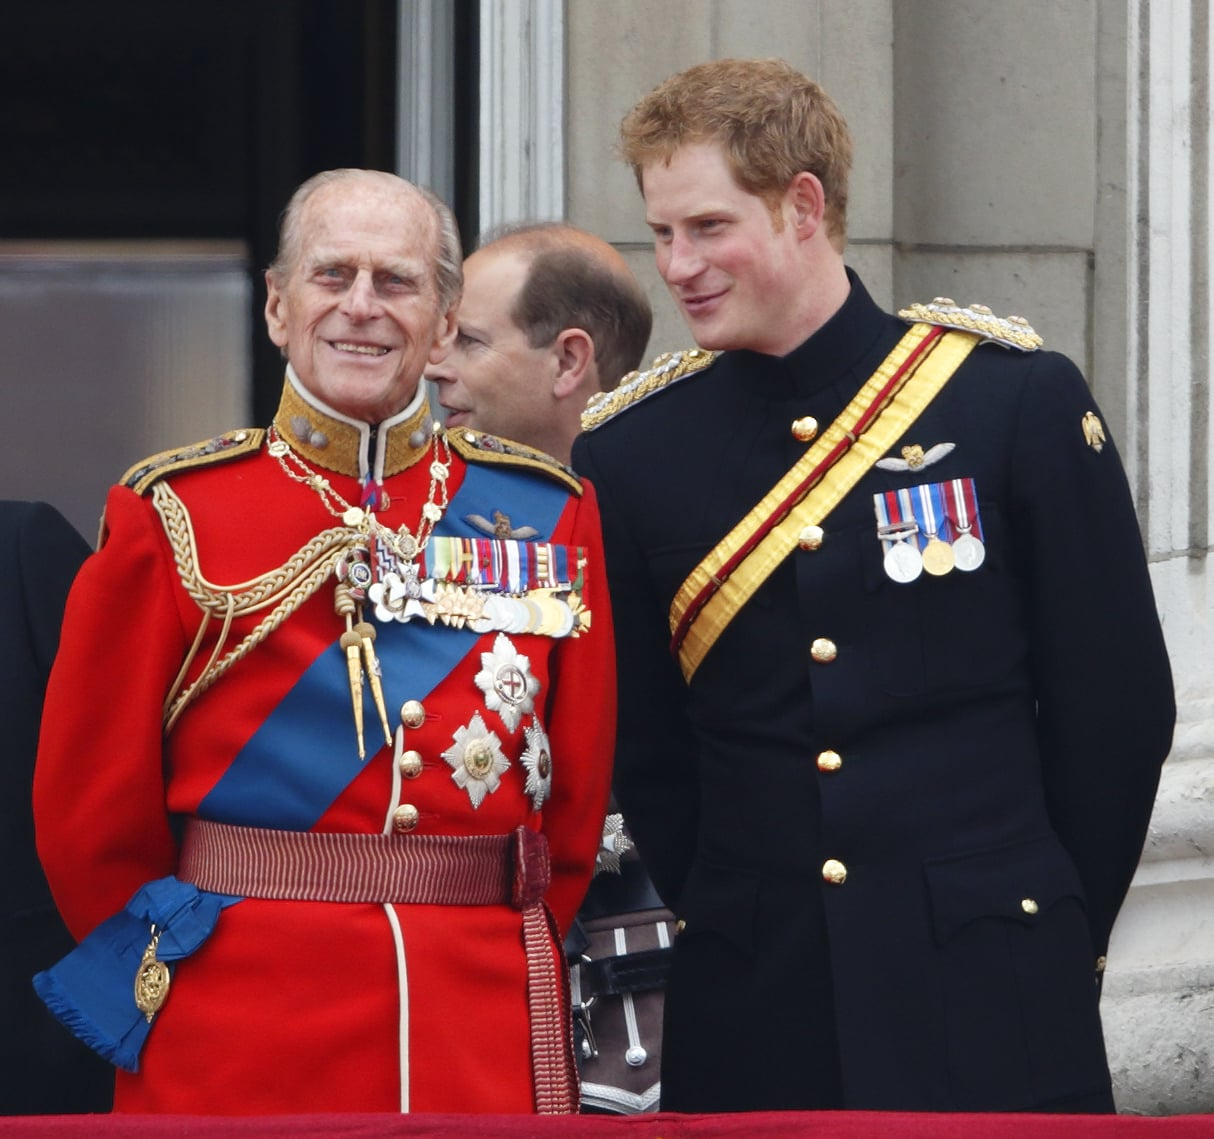 LONDON, UNITED KINGDOM - JUNE 014: (EMBARGOED FOR PUBLICATION IN UK NEWSPAPERS UNTIL 48 HOURS AFTER CREATE DATE AND TIME) Prince Philip, Duke of Edinburgh and Prince Harry watch the fly-past from the balcony of Buckingham Palace during Trooping the Colour, Queen Elizabeth II's Birthday Parade on June 14, 2014 in London, England. (Photo by Max Mumby/Indigo/Getty Images)